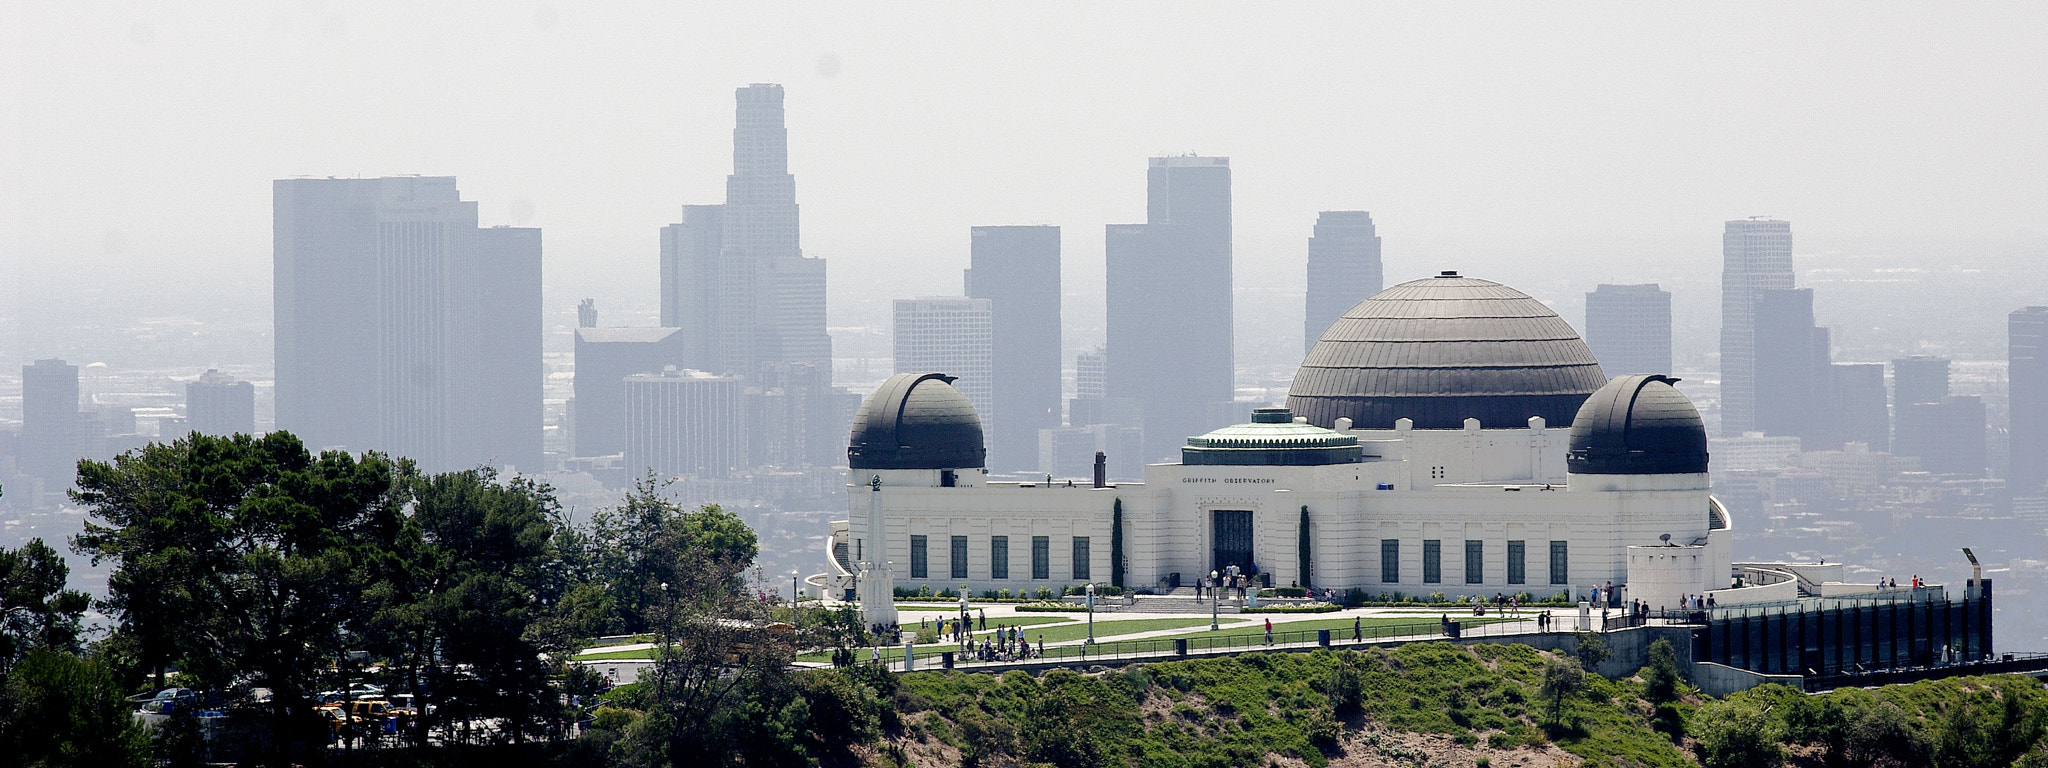 Photograph @Griffith Observatory by Yushin (Andy) Cho on 500px